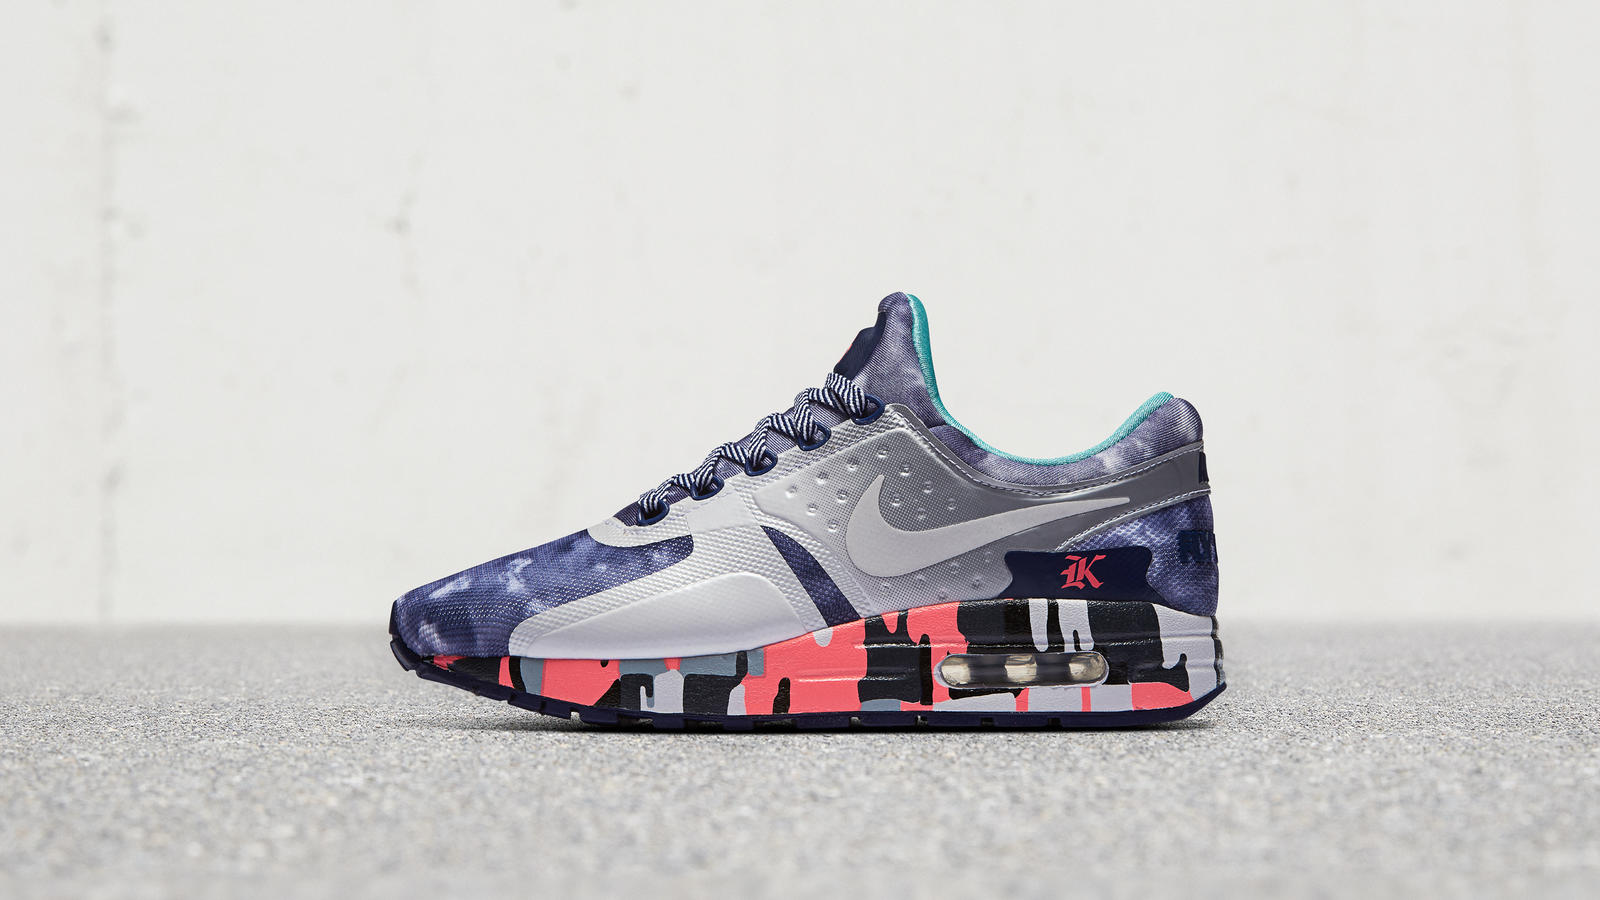 the latest 38097 df006 Wang Junkai's Nike Air Max Zero releases in March in grade school sizes on  nike.com in North America and Greater China.